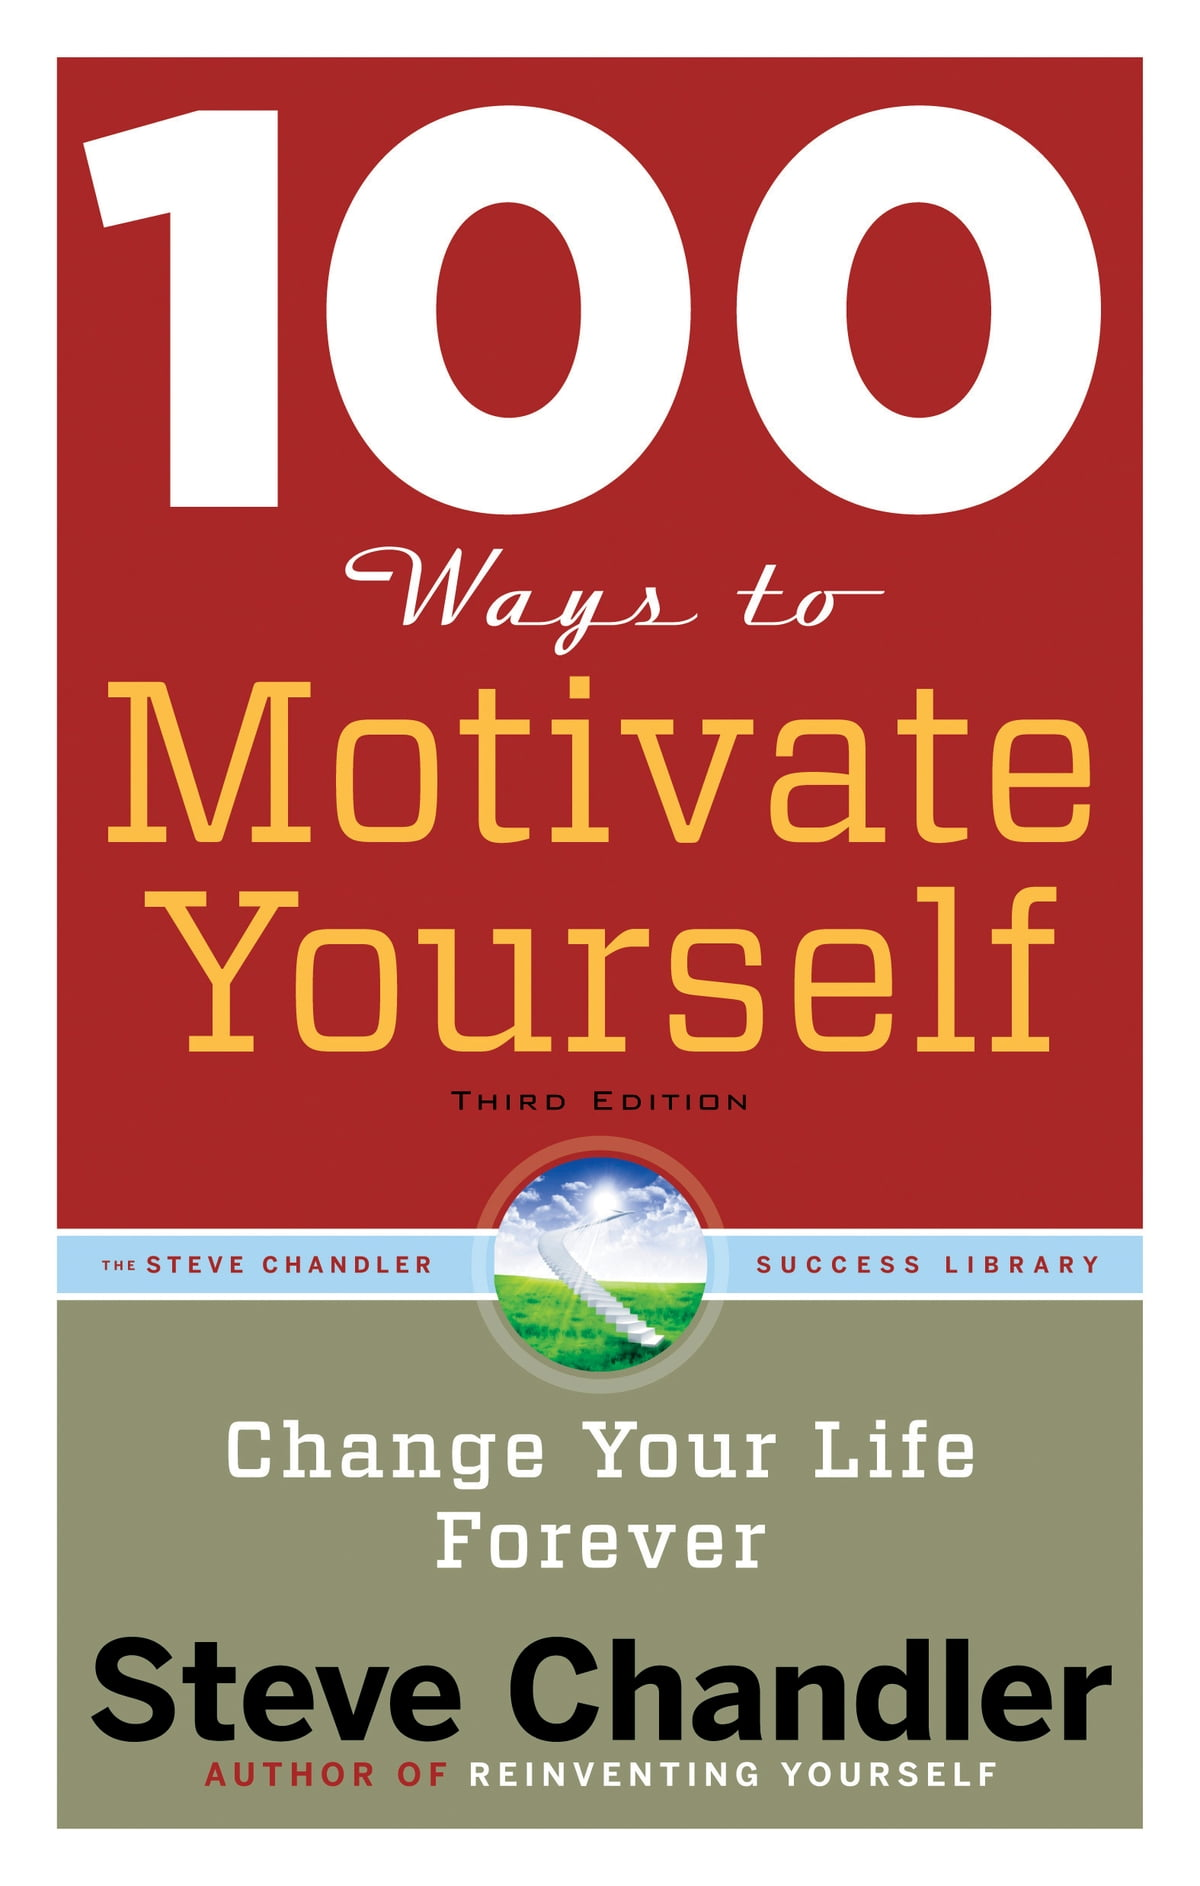 100 Ways to Motivate Yourself, Third Edition eBook by Steve Chandler -  9781601635549 | Rakuten Kobo